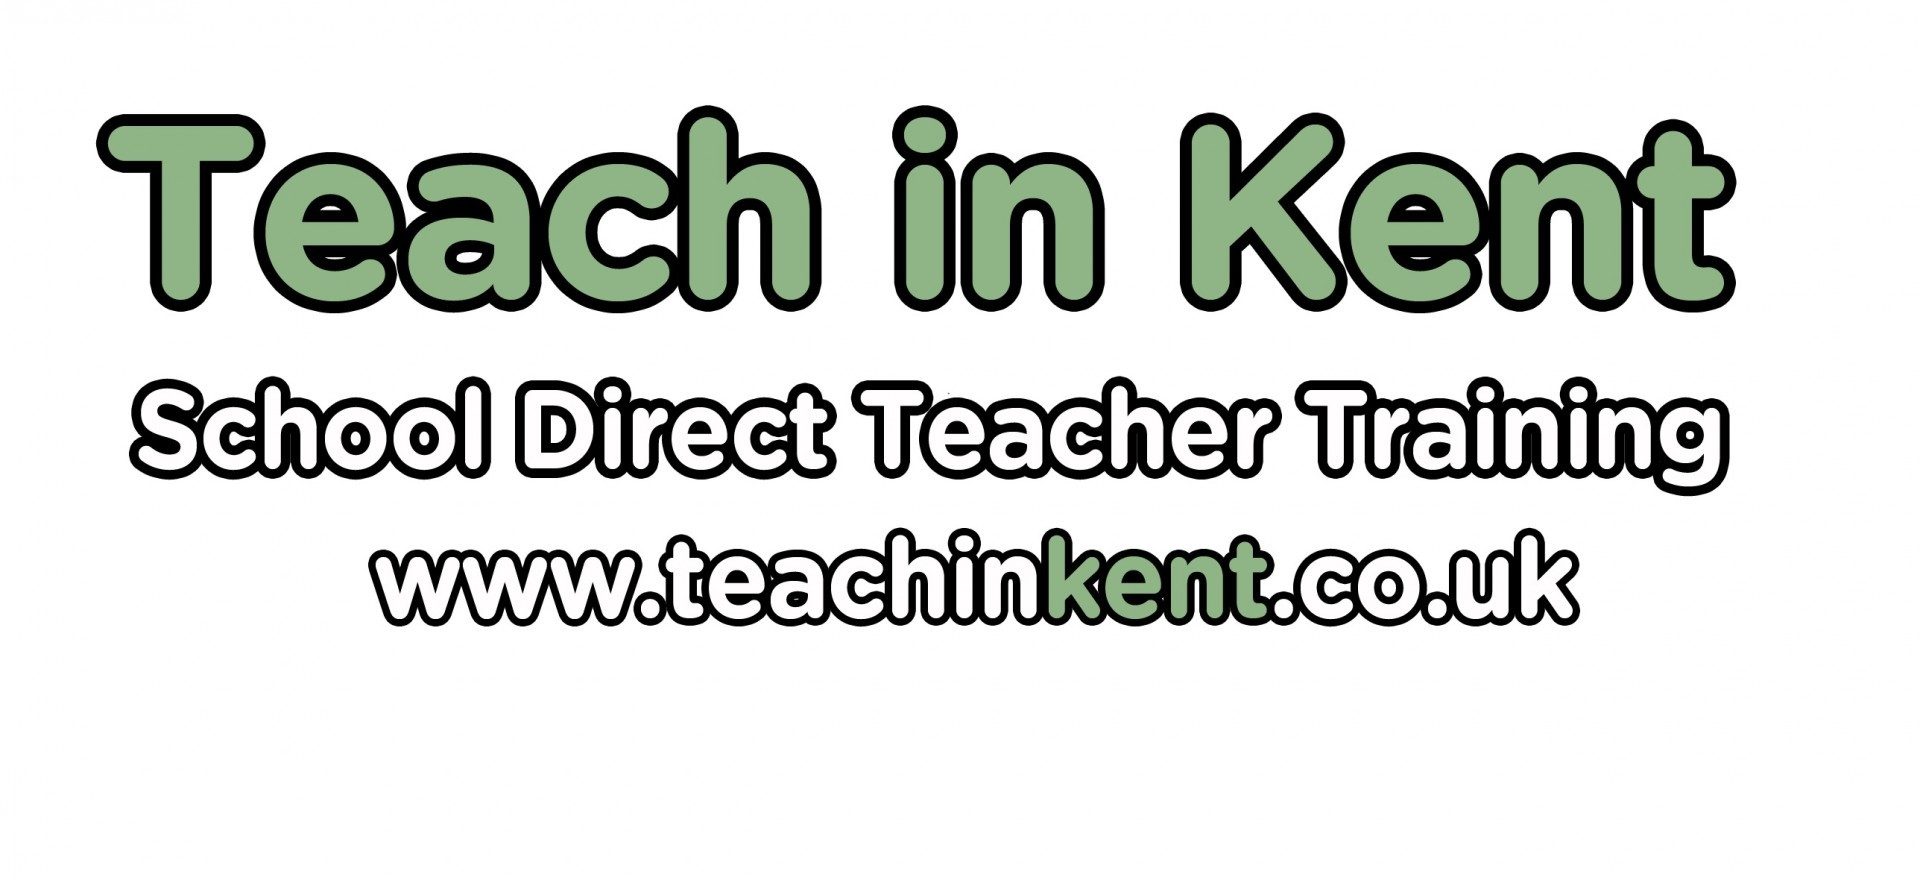 Teach in Kent Logo